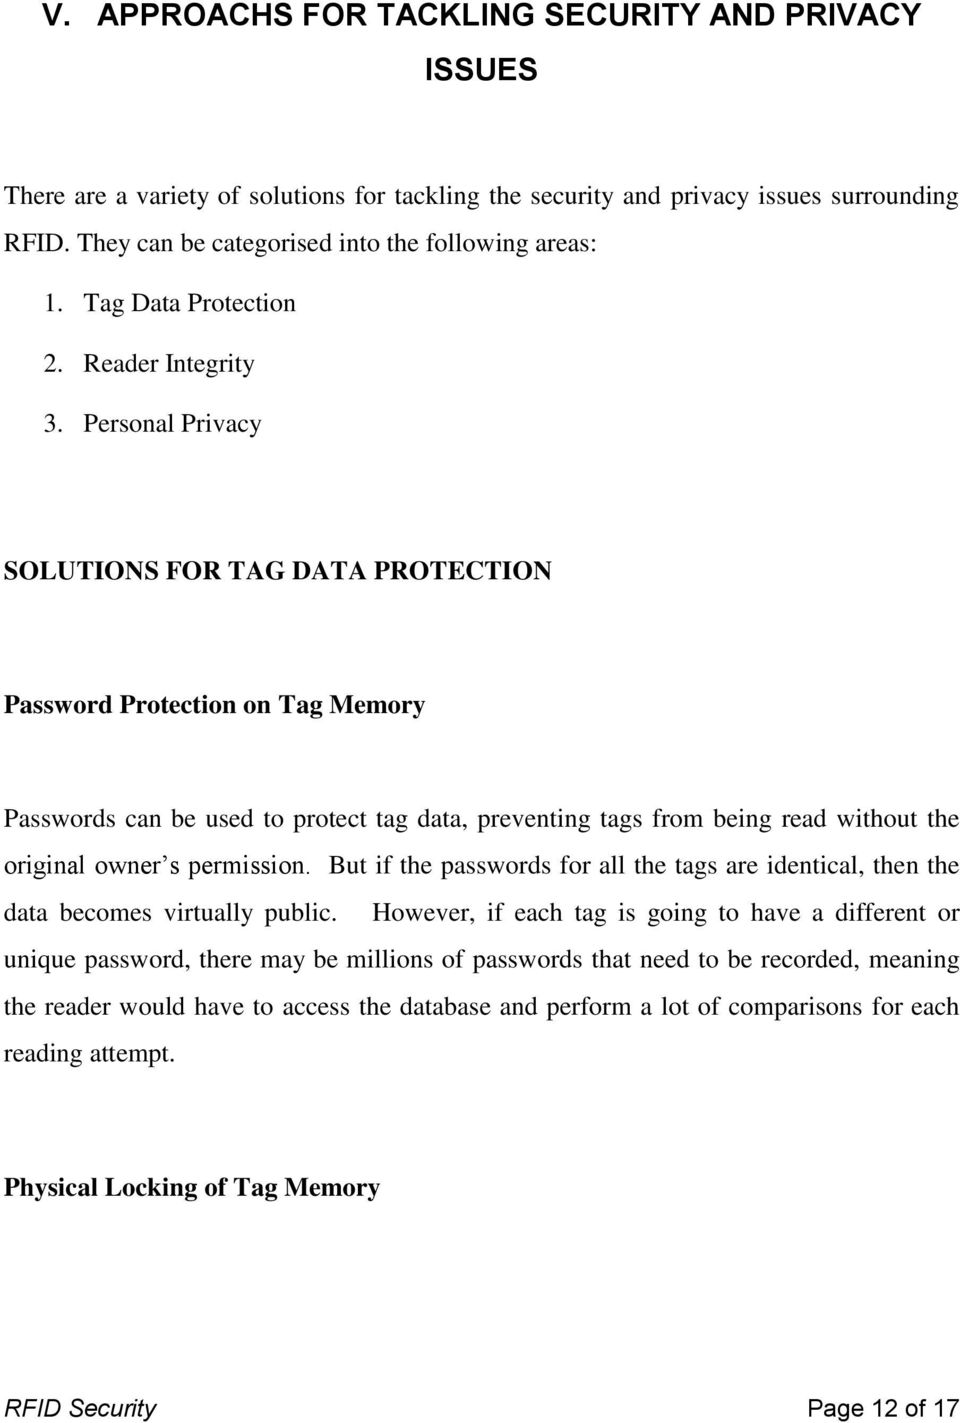 Personal Privacy SOLUTIONS FOR TAG DATA PROTECTION Password Protection on Tag Memory Passwords can be used to protect tag data, preventing tags from being read without the original owner s permission.